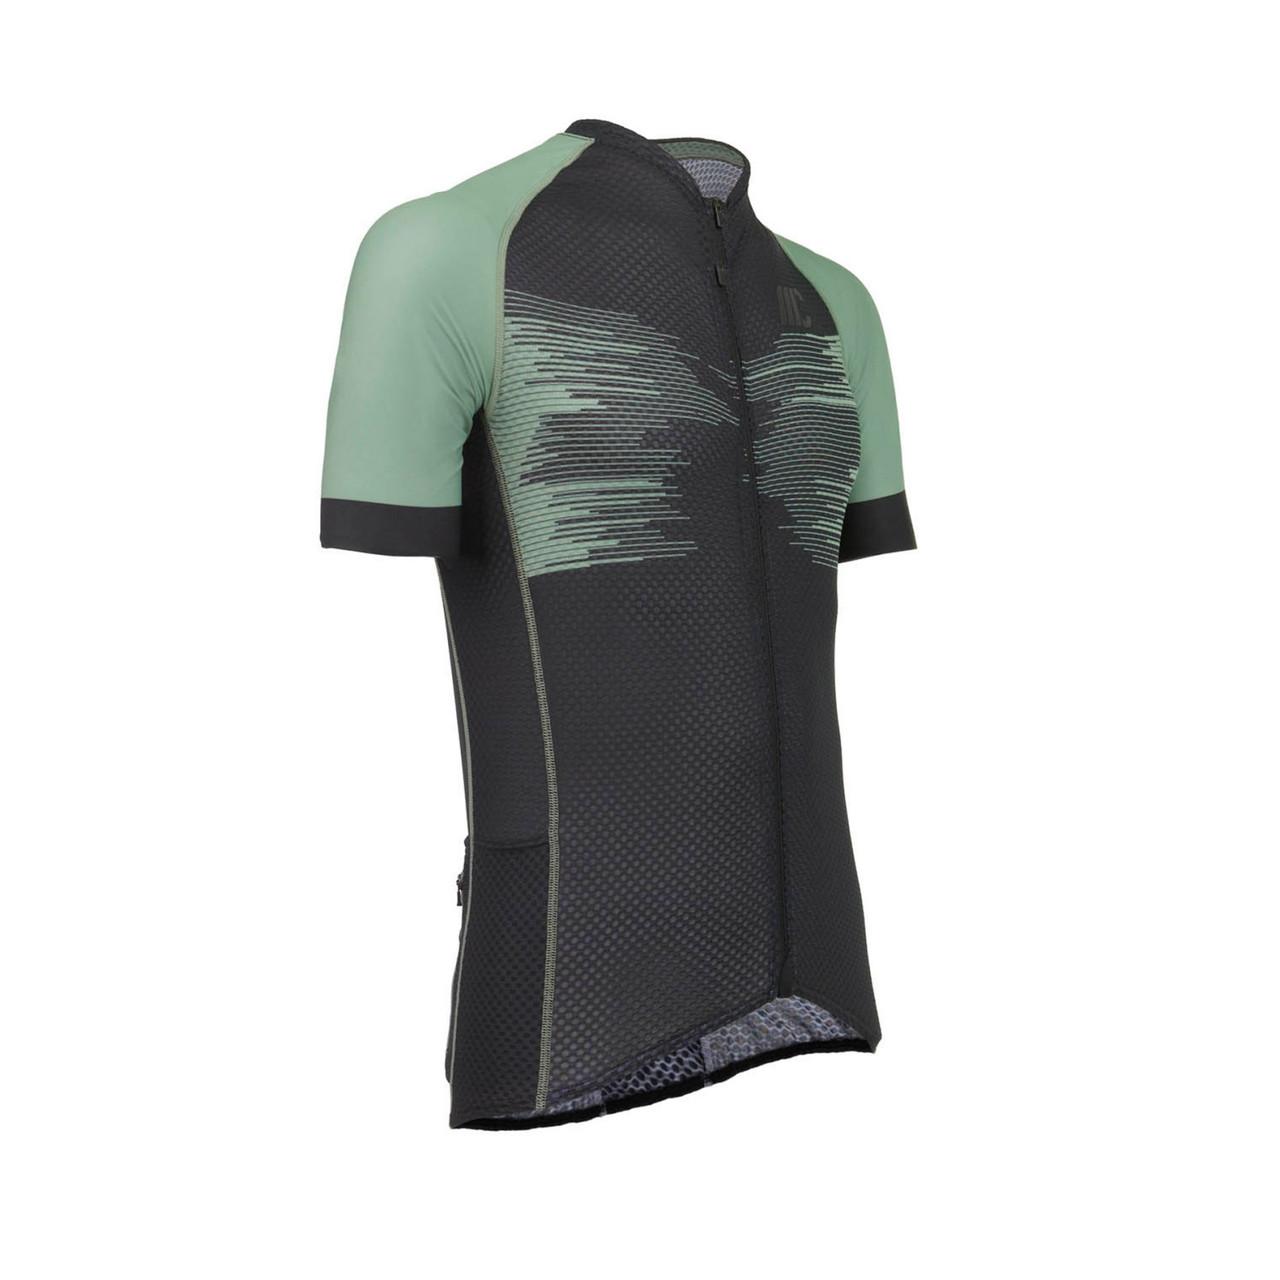 MCipollini Sprint Frequenza Green Jersey Side